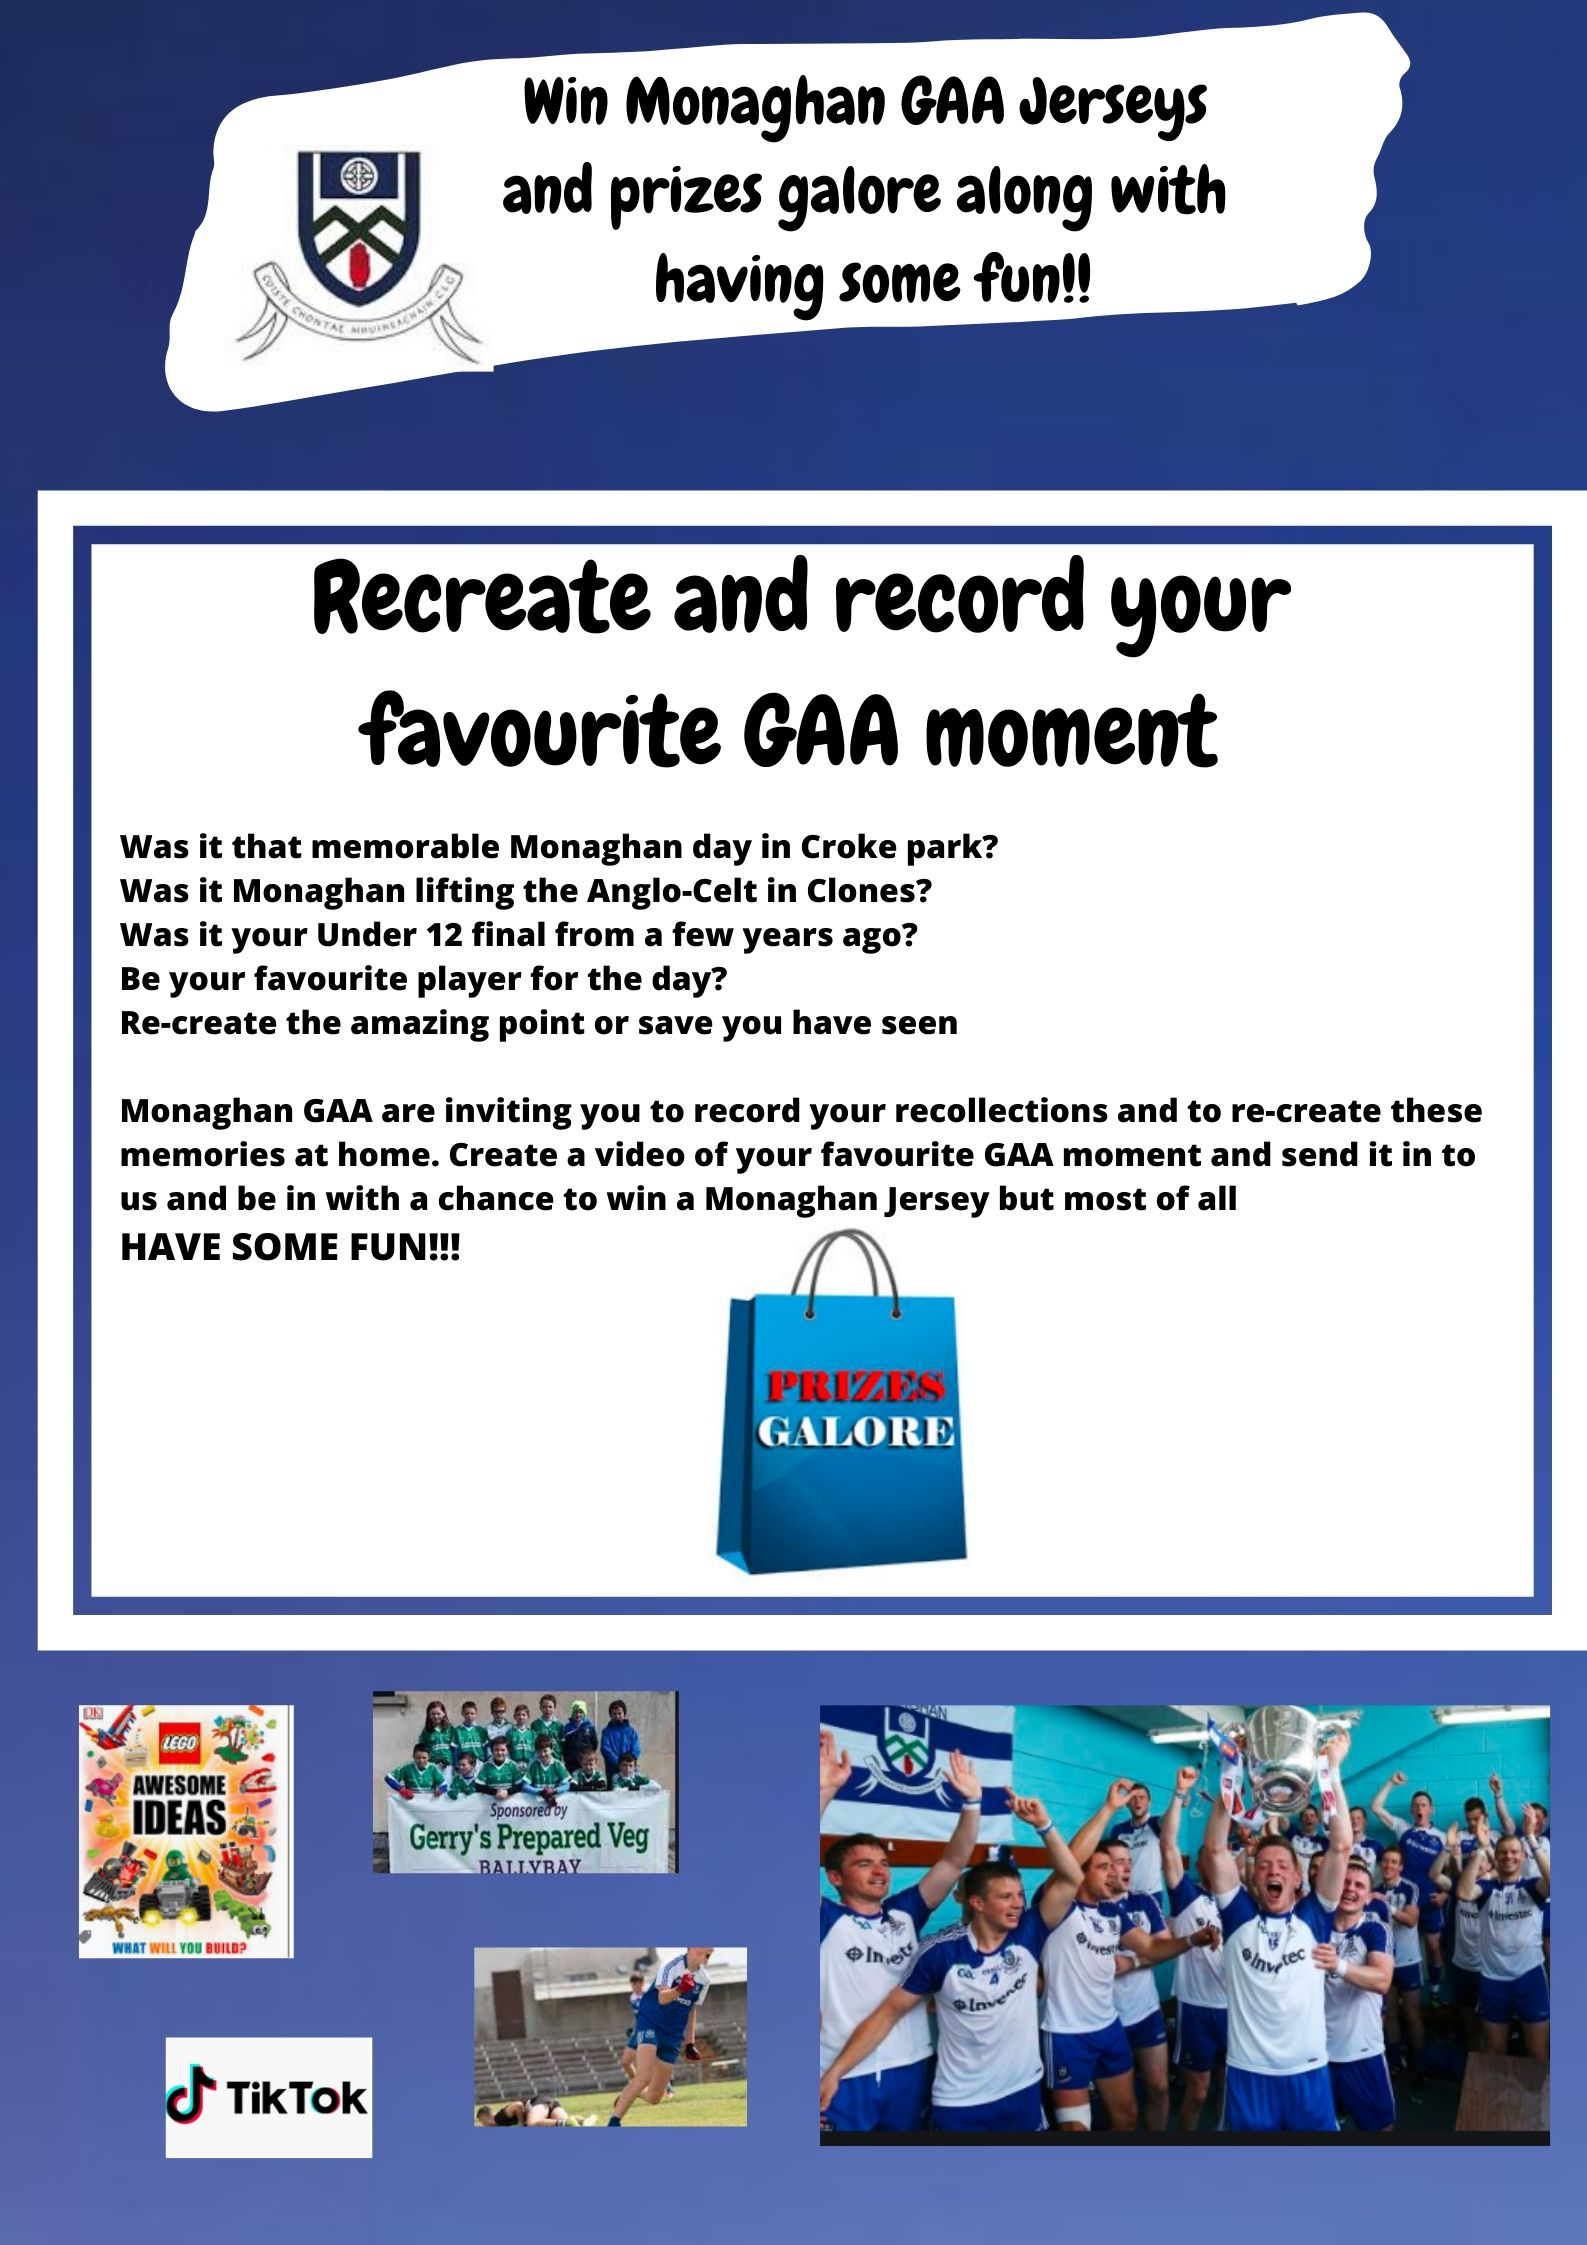 Win Monaghan GAA Jerseys and prizes galore just by having Fun!